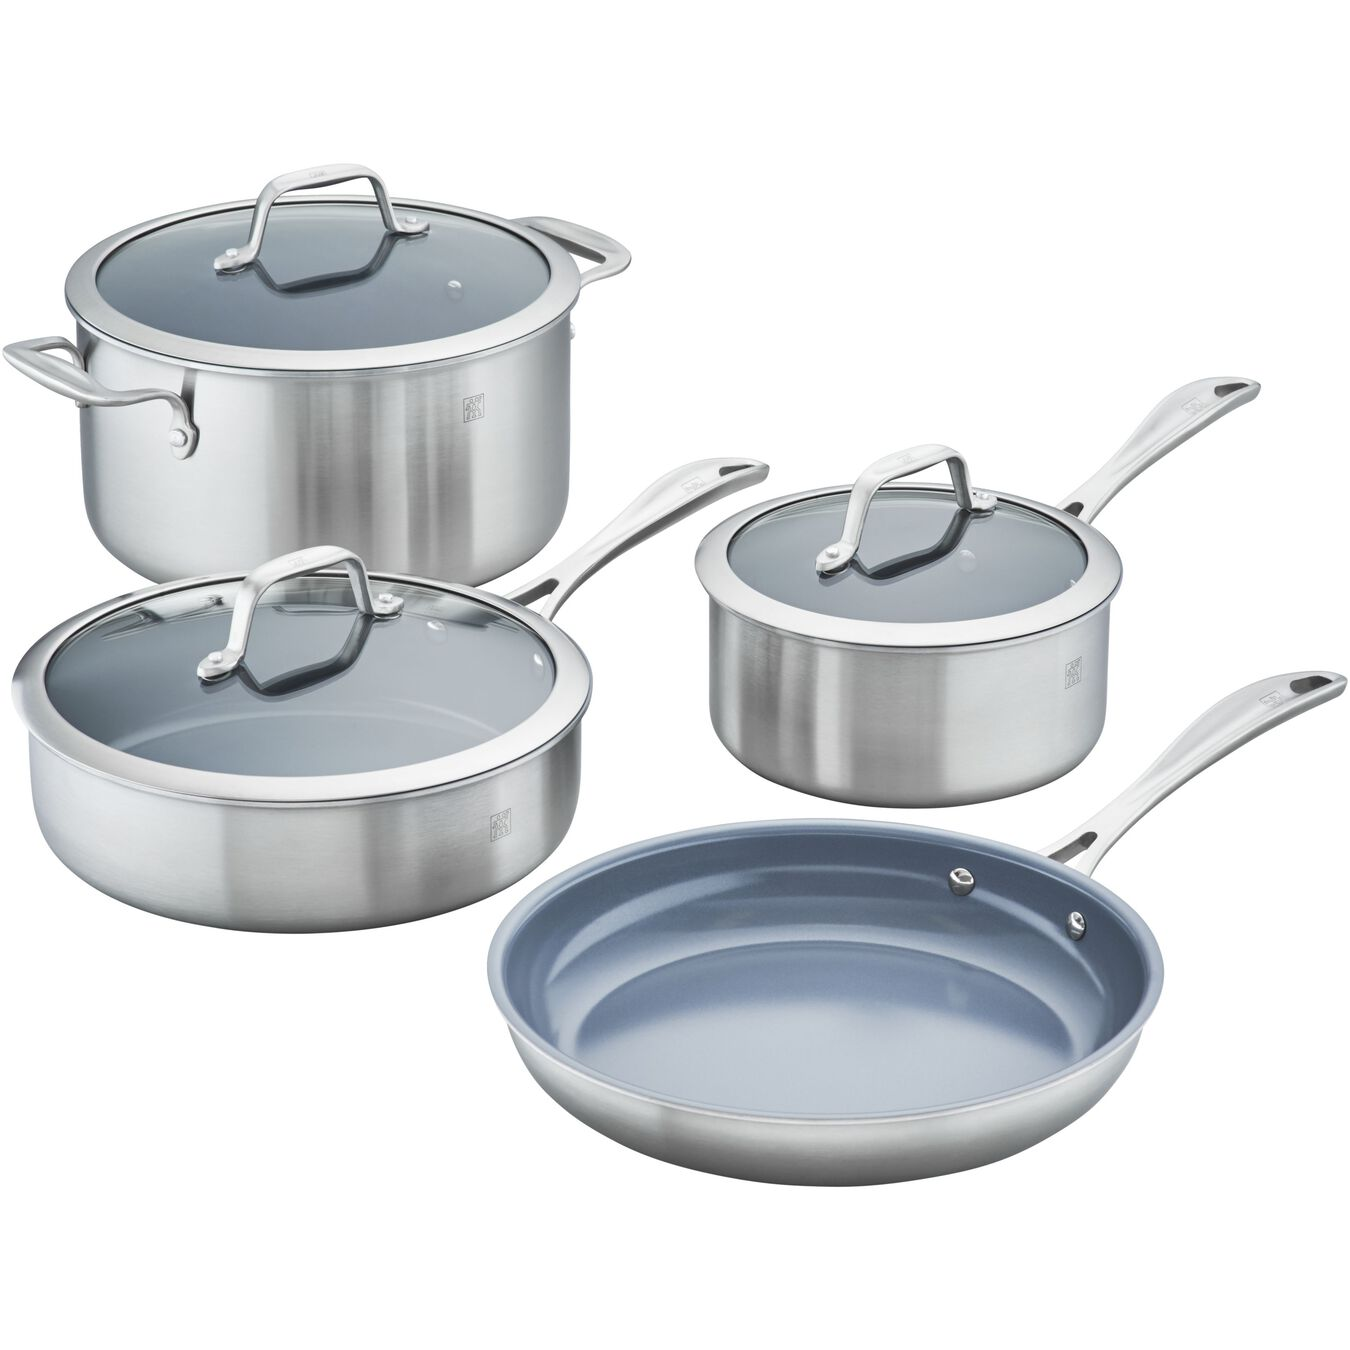 3-ply 7-pc Stainless Steel Ceramic Nonstick Cookware Set,,large 1